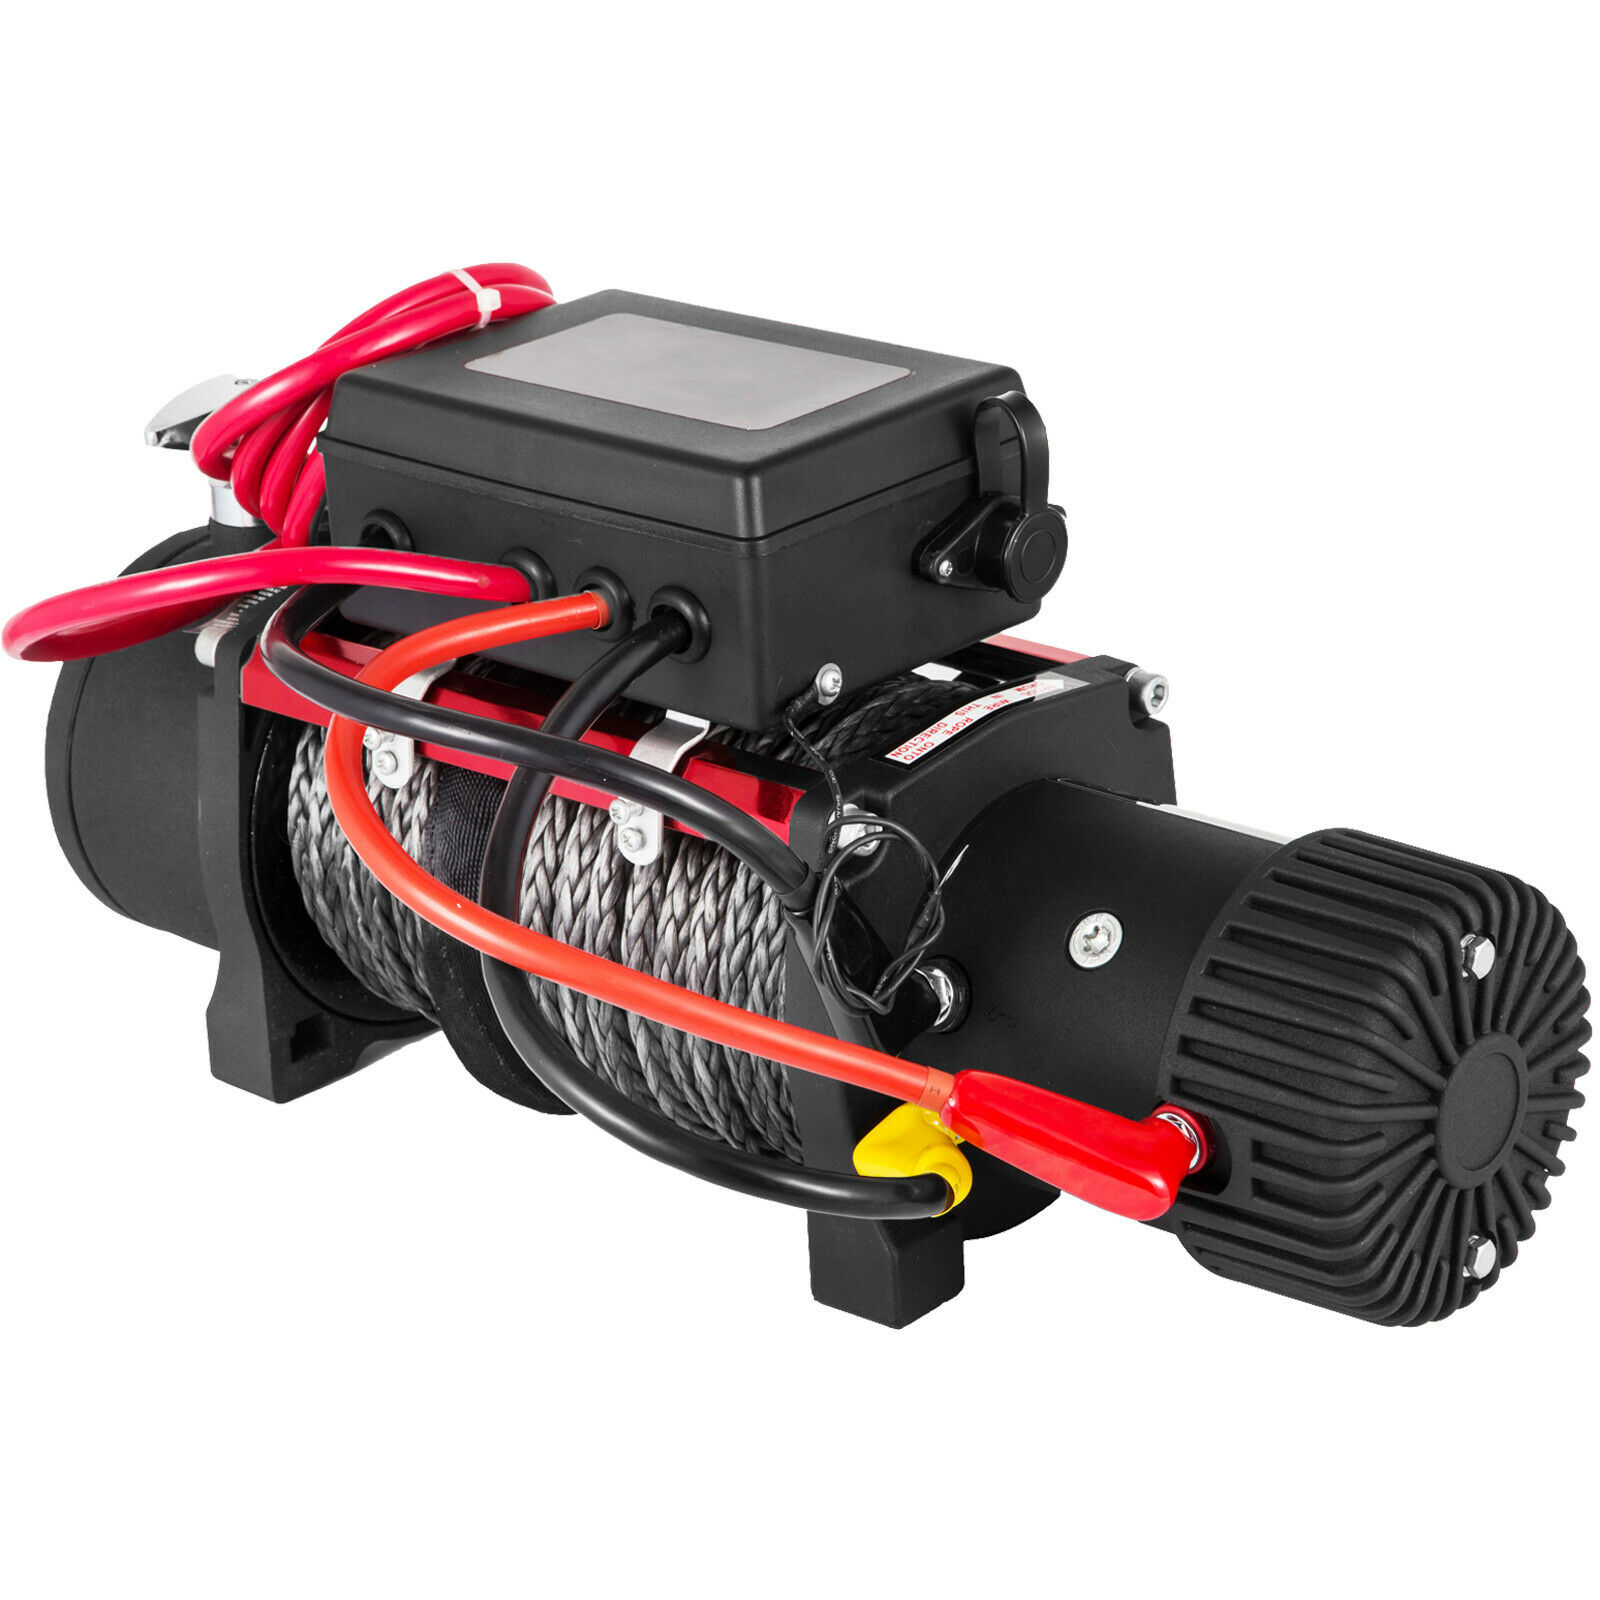 VEVOR 13500lb Electric winch remote control 12V synthetic rope Gear Train Roller Fairlead Electric Winch ATV Recovery Winch